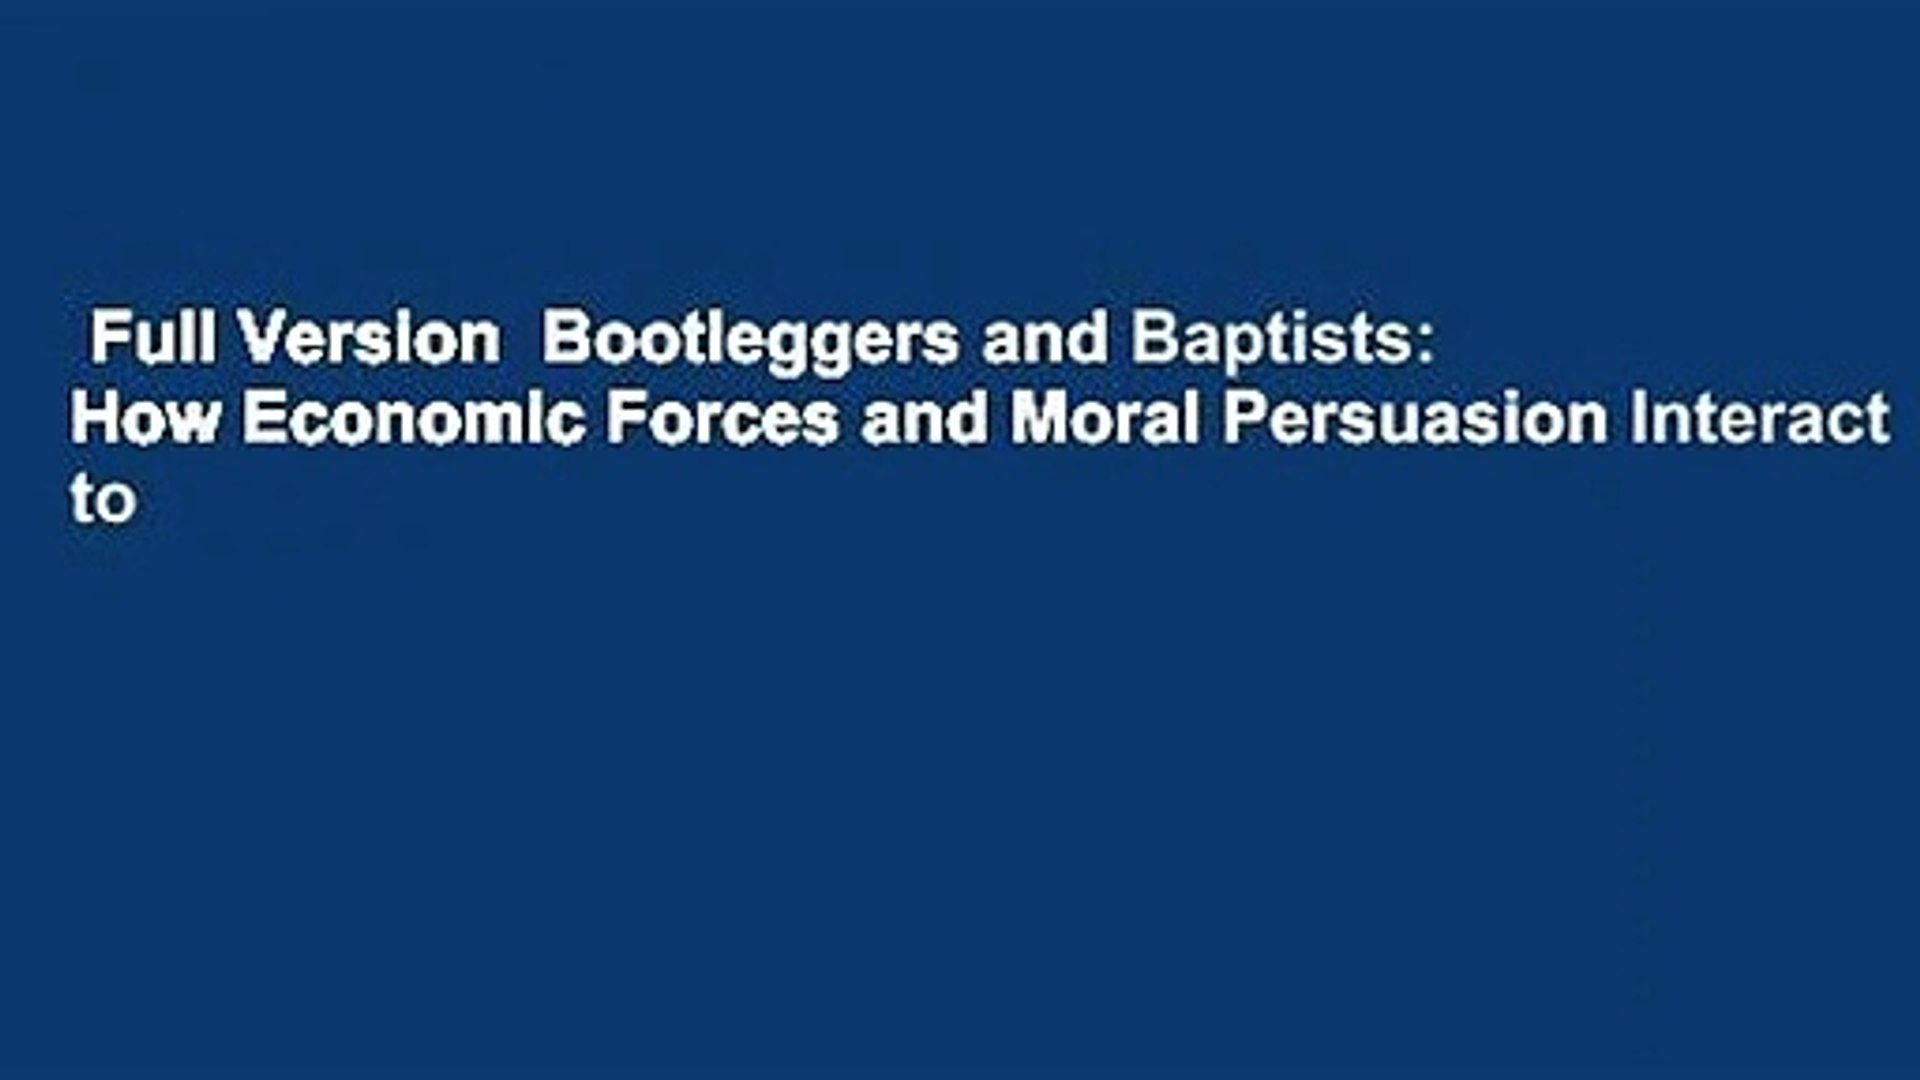 Bootleggers and Baptists